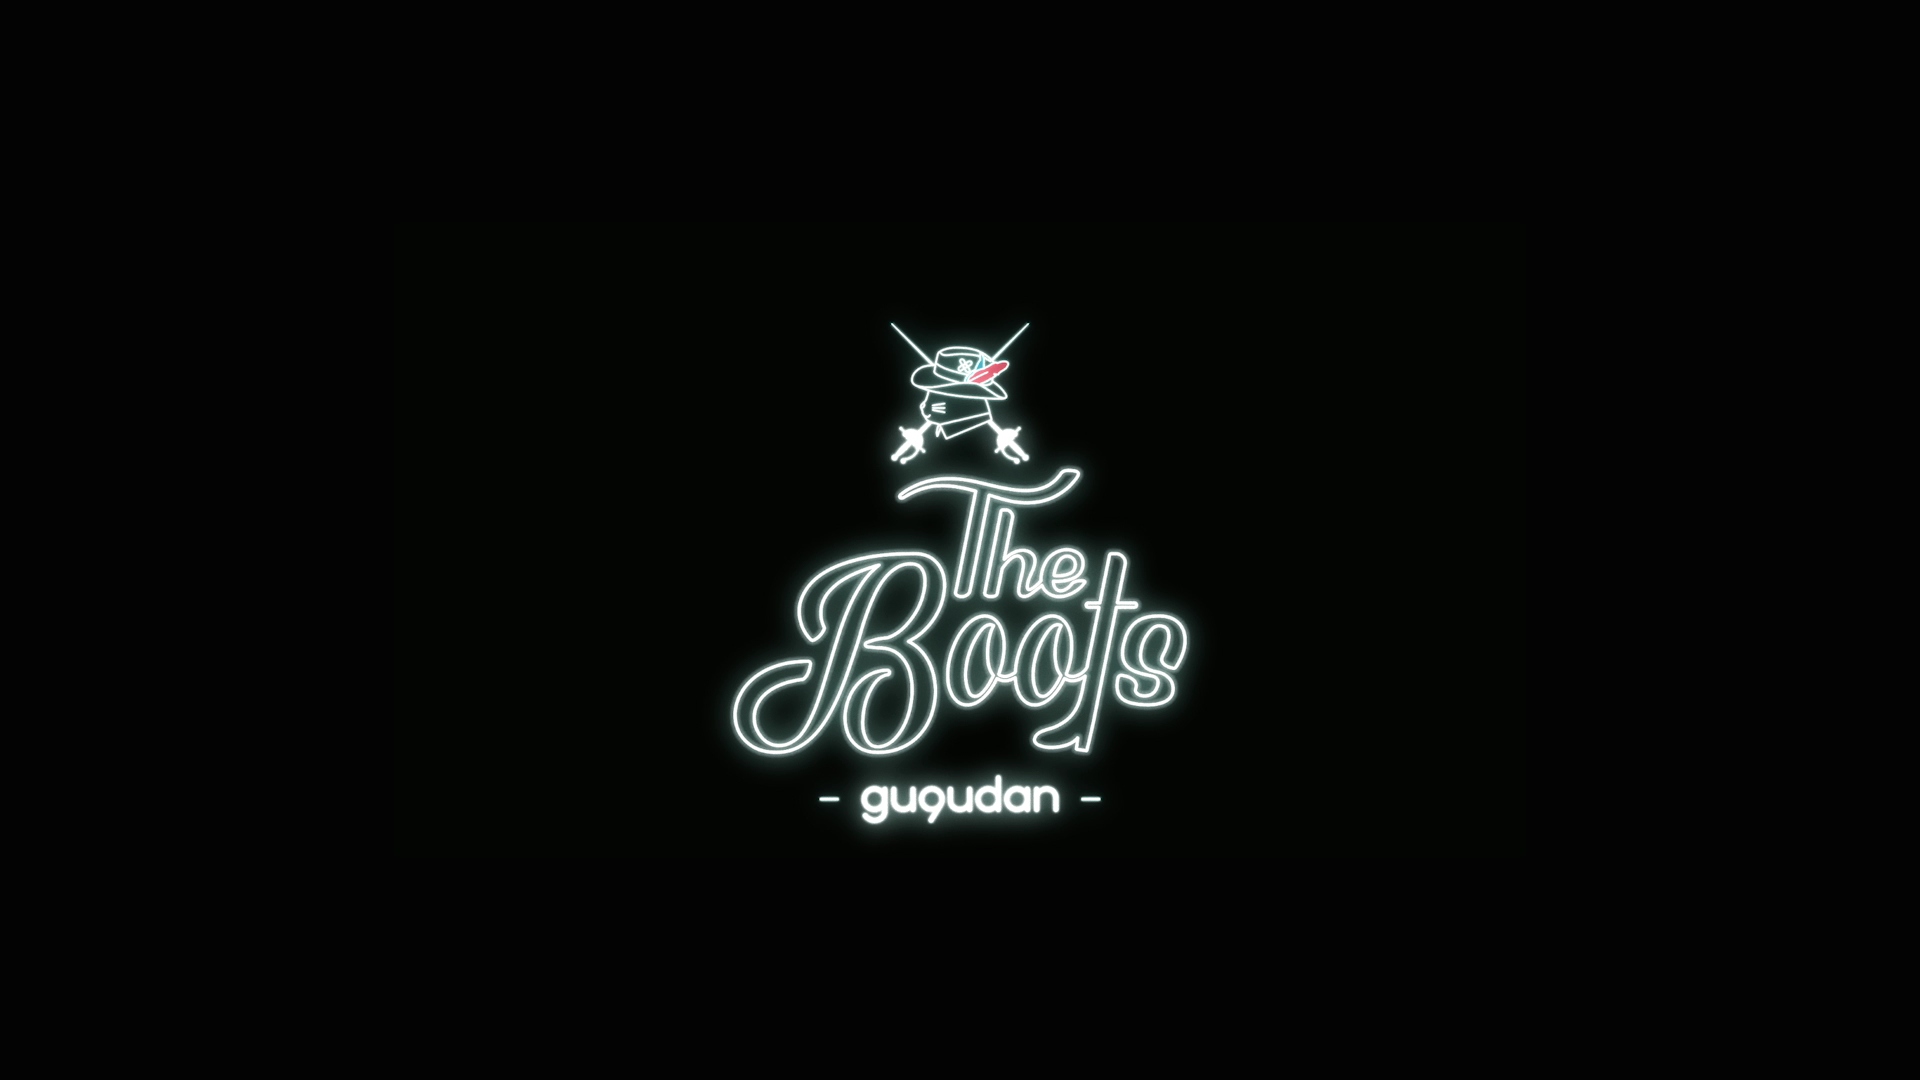 gugudan(구구단) - 'The Boots' Official M/V